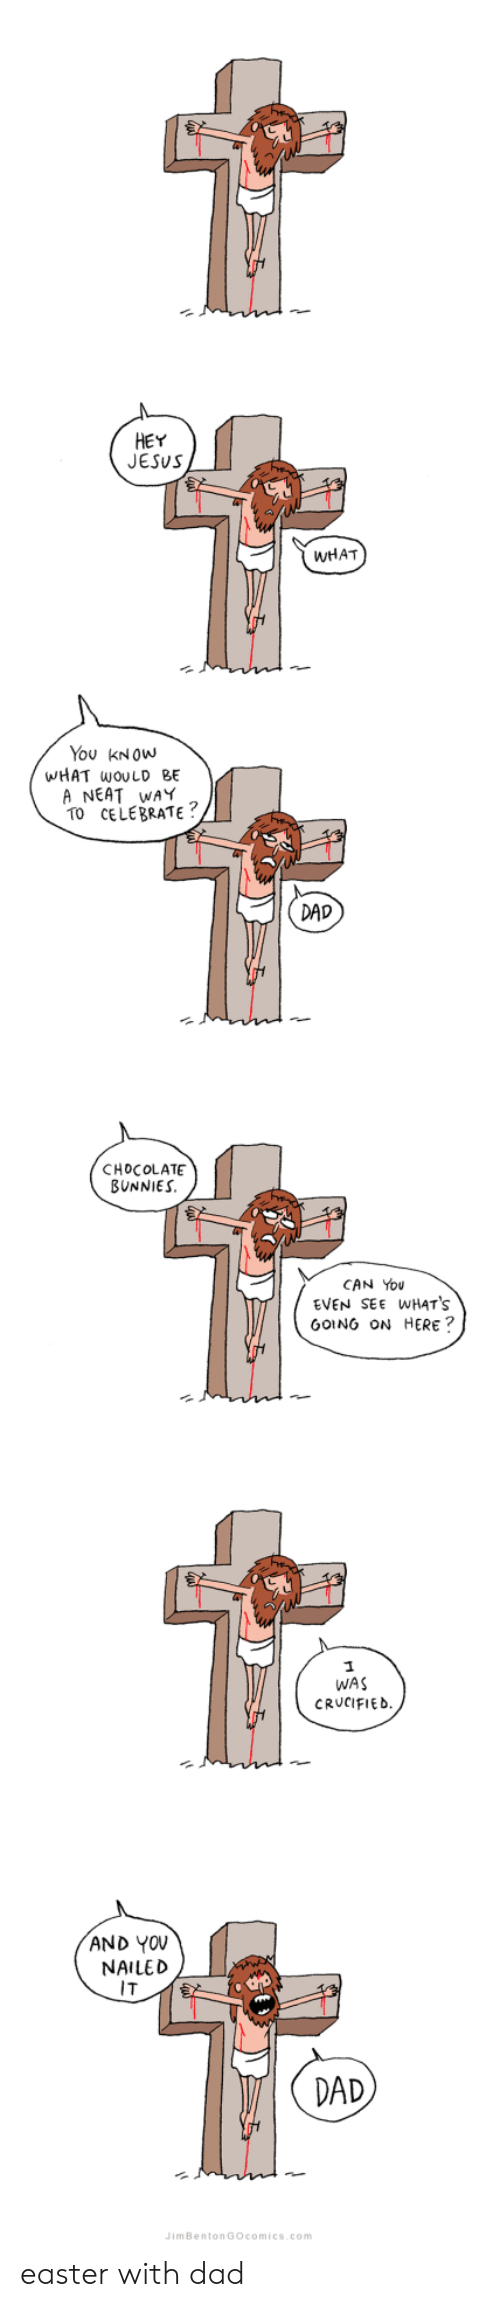 Bunnies: HEY  JESUS  WHAT  You KNOWw  WHAT wOULD BE  A NEAT WAY  TO CELEBRATE  DAD  CHOCOLATE  BUNNIES  CAN You  EVEN SEE WHATS  GOING ON HERE?  WAS  CRUCIFIED  AND YOV  NAILED  IT  2  DAD  imBentonGOcomics.com easter with dad